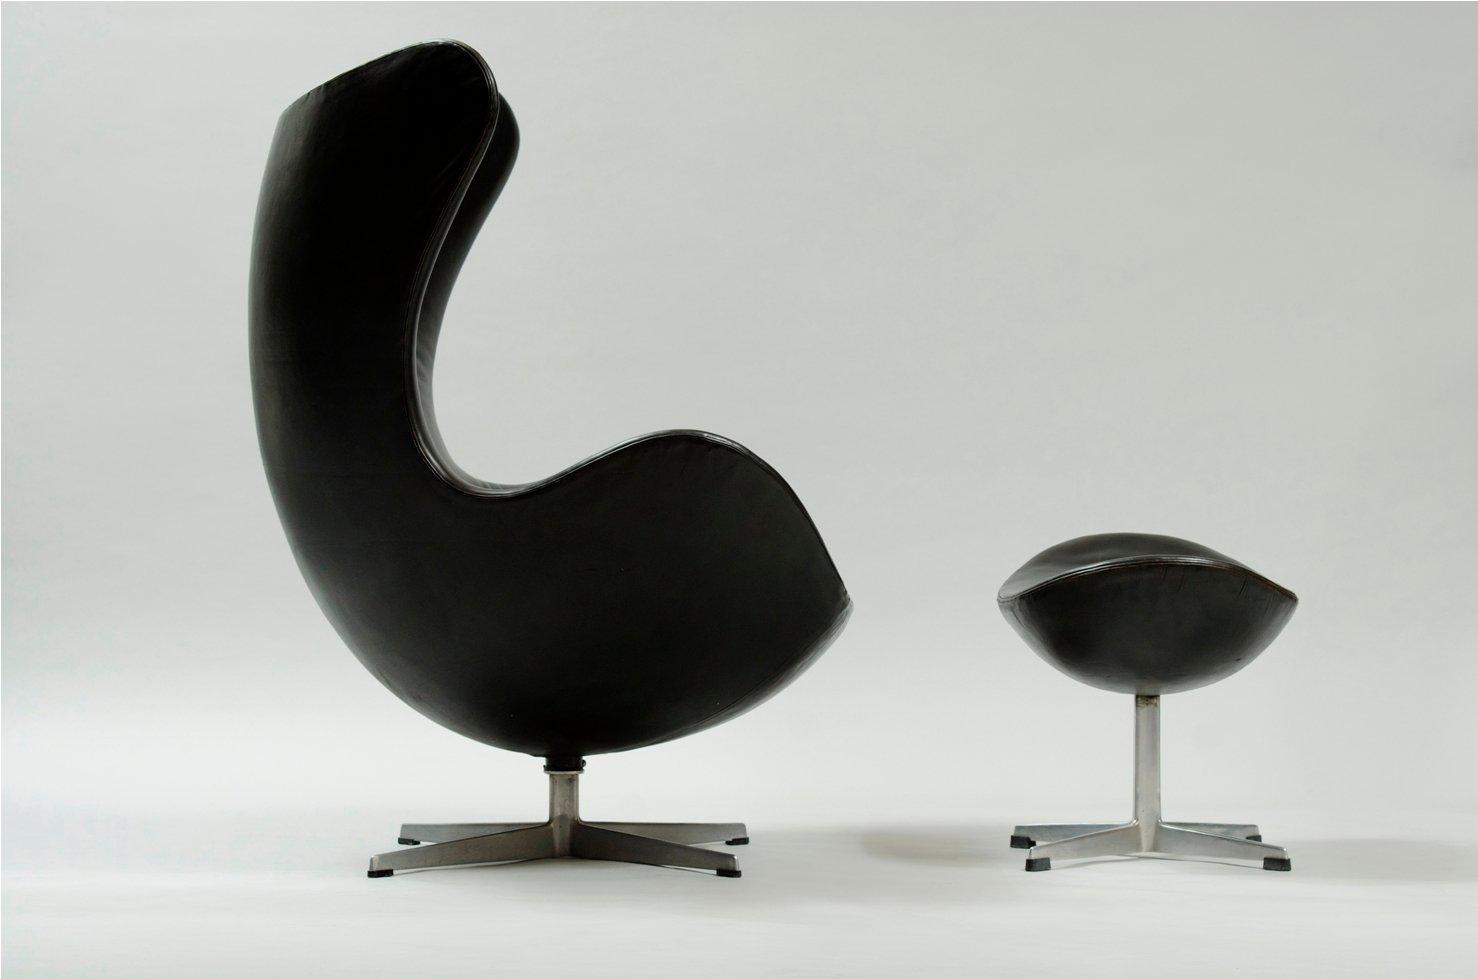 Exceptional Egg Chair And Ottoman By Arne Jacobsen For Fritz Hansen